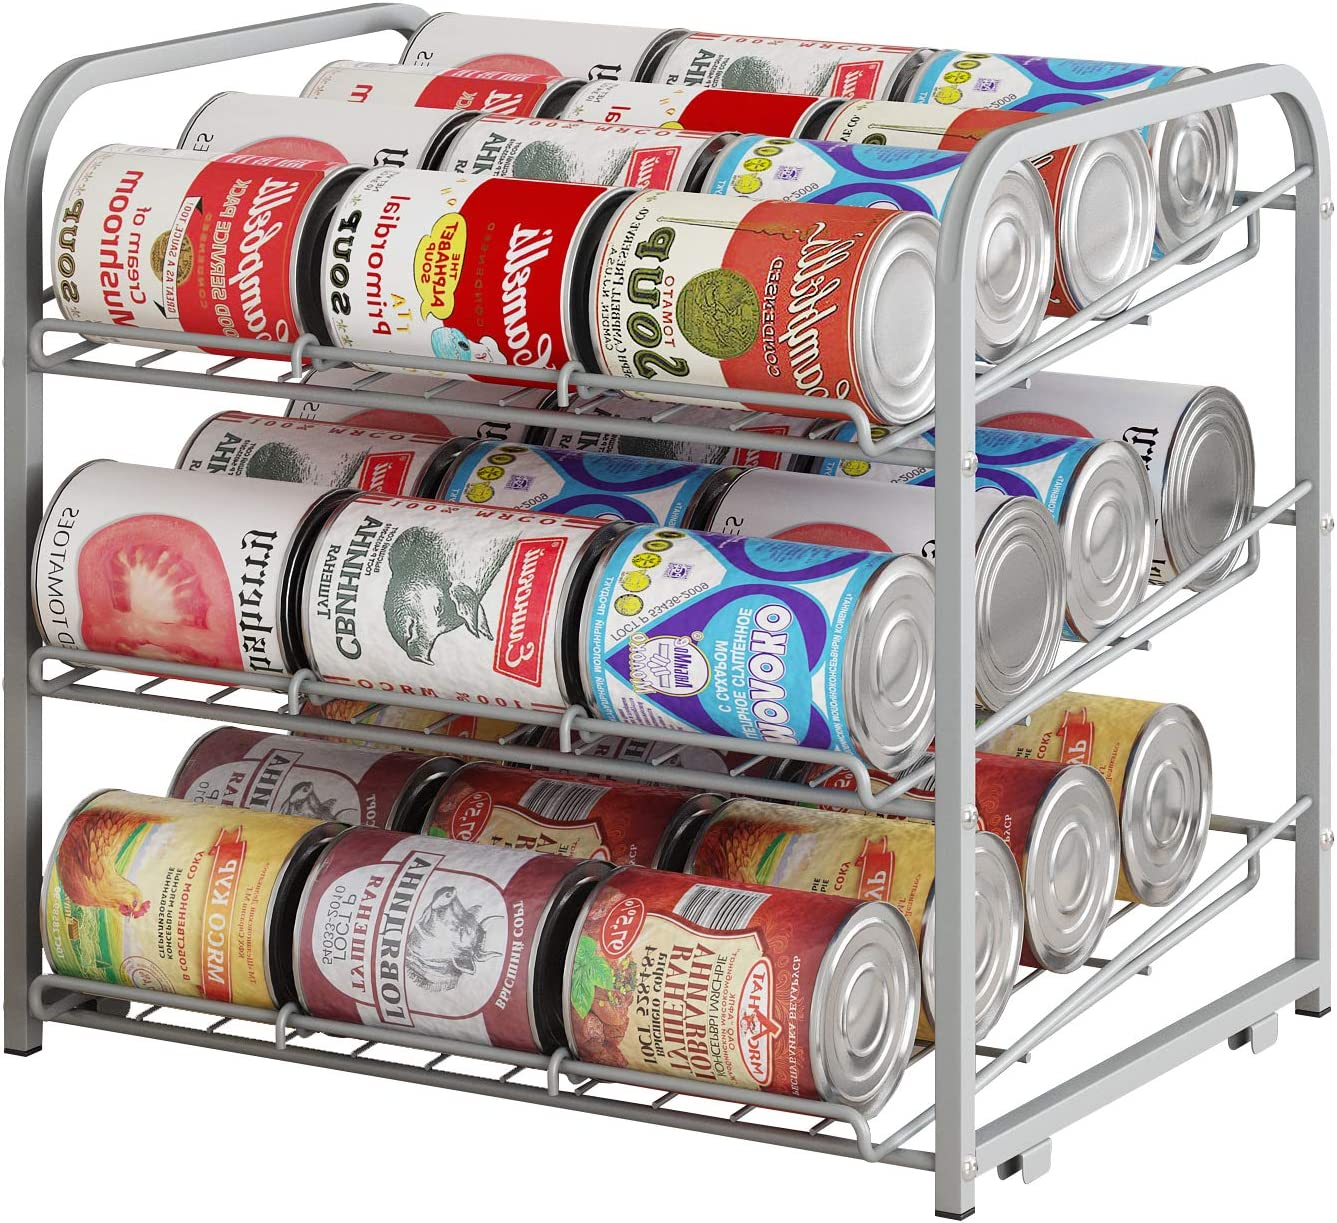 AIYAKA 3 Tier Stackable Can Rack Organizer,for food storage,kitchen cabinets or countertops,Storage for 36 cans,Silver